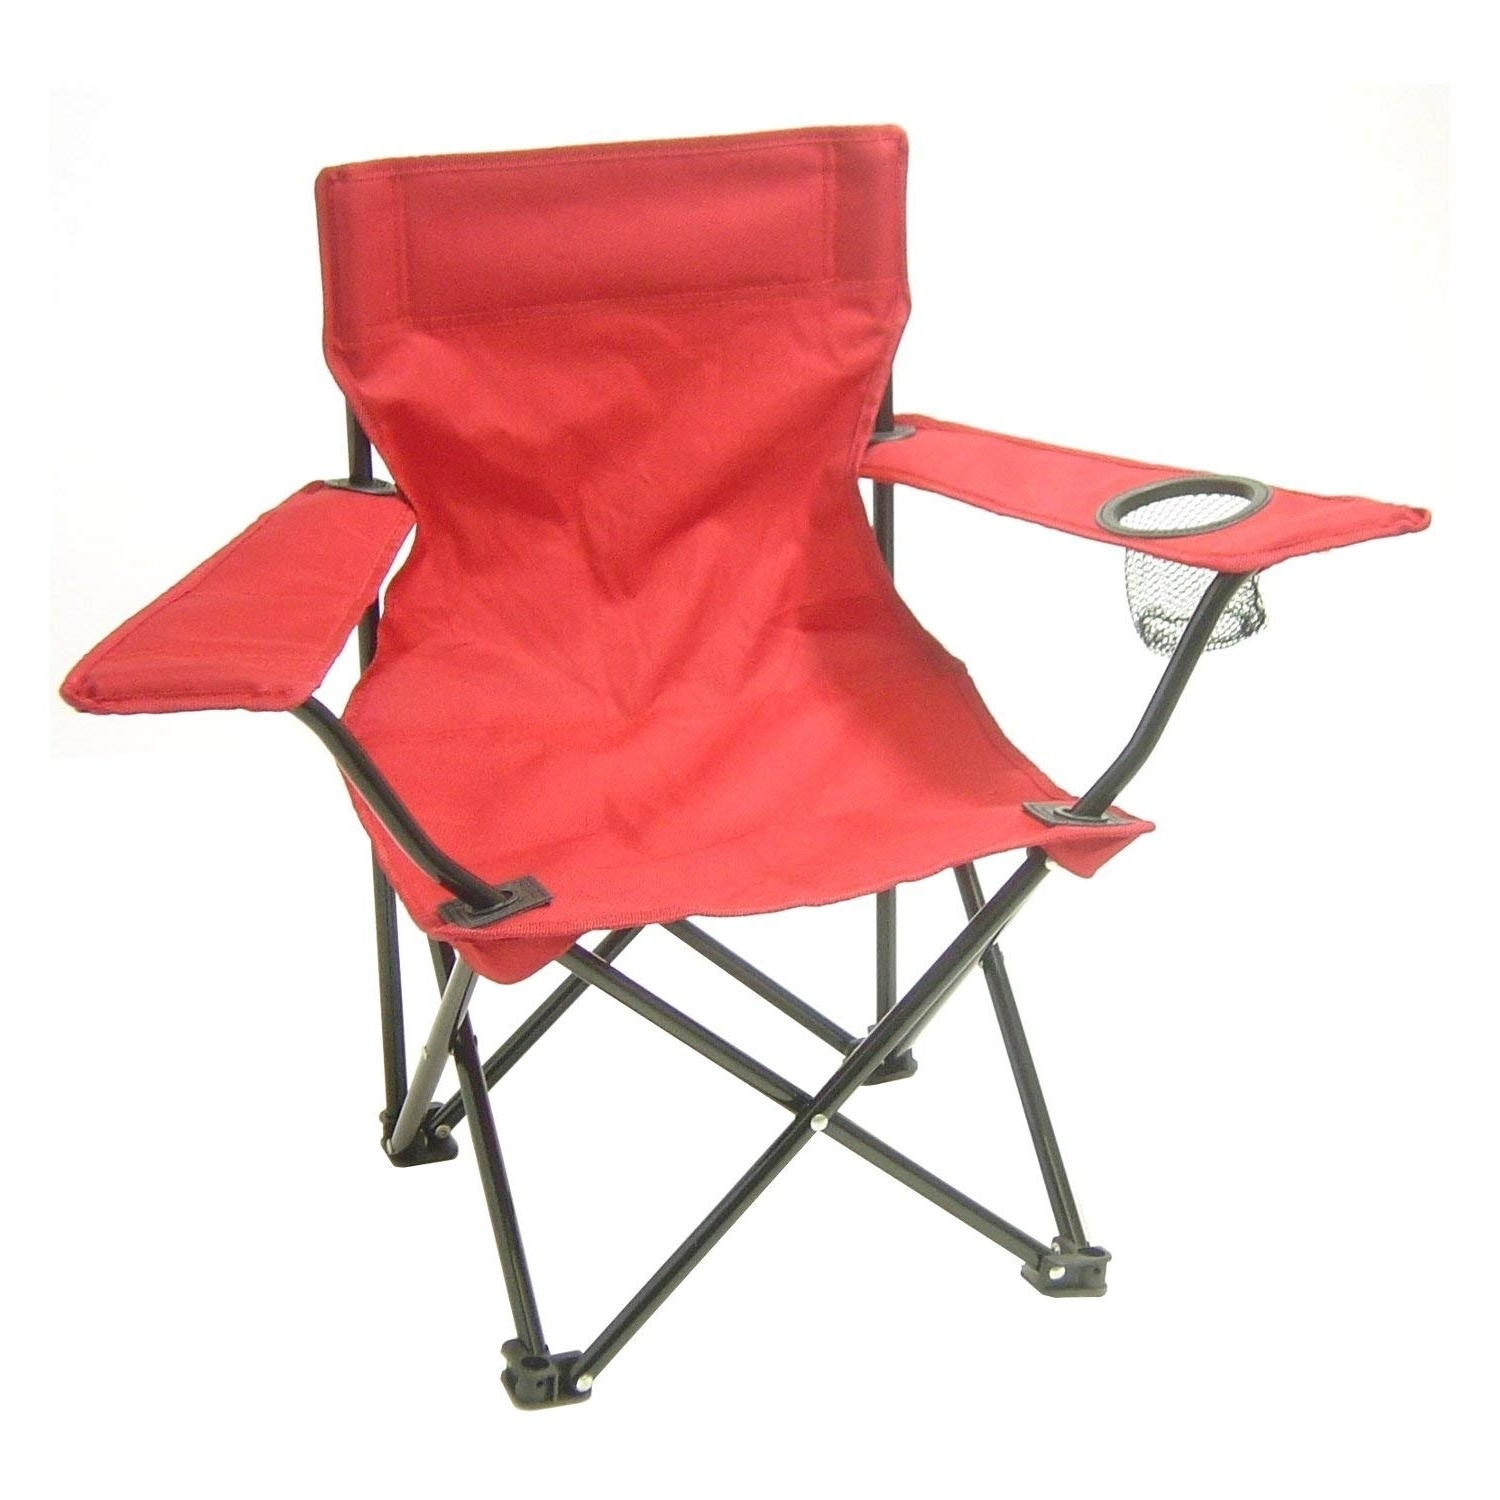 Amazon: Redmon For Kids, Kids Folding Camp Chair, Red: Baby Throughout Trendy Alexa Firecracker Side Chairs (View 11 of 20)